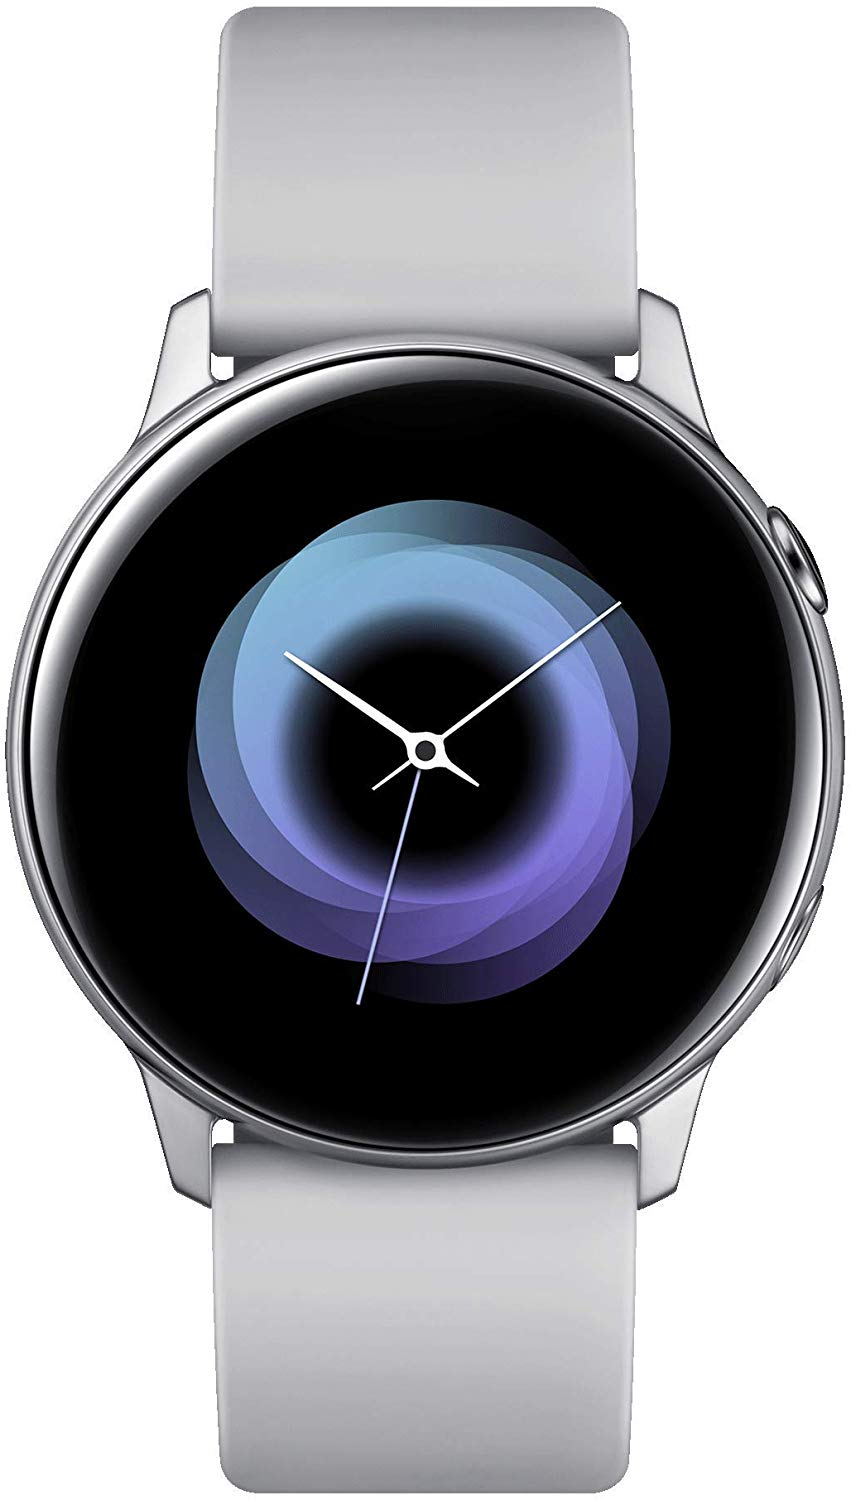 Offerta Samsung Galaxy Watch Active su TrovaUsati.it